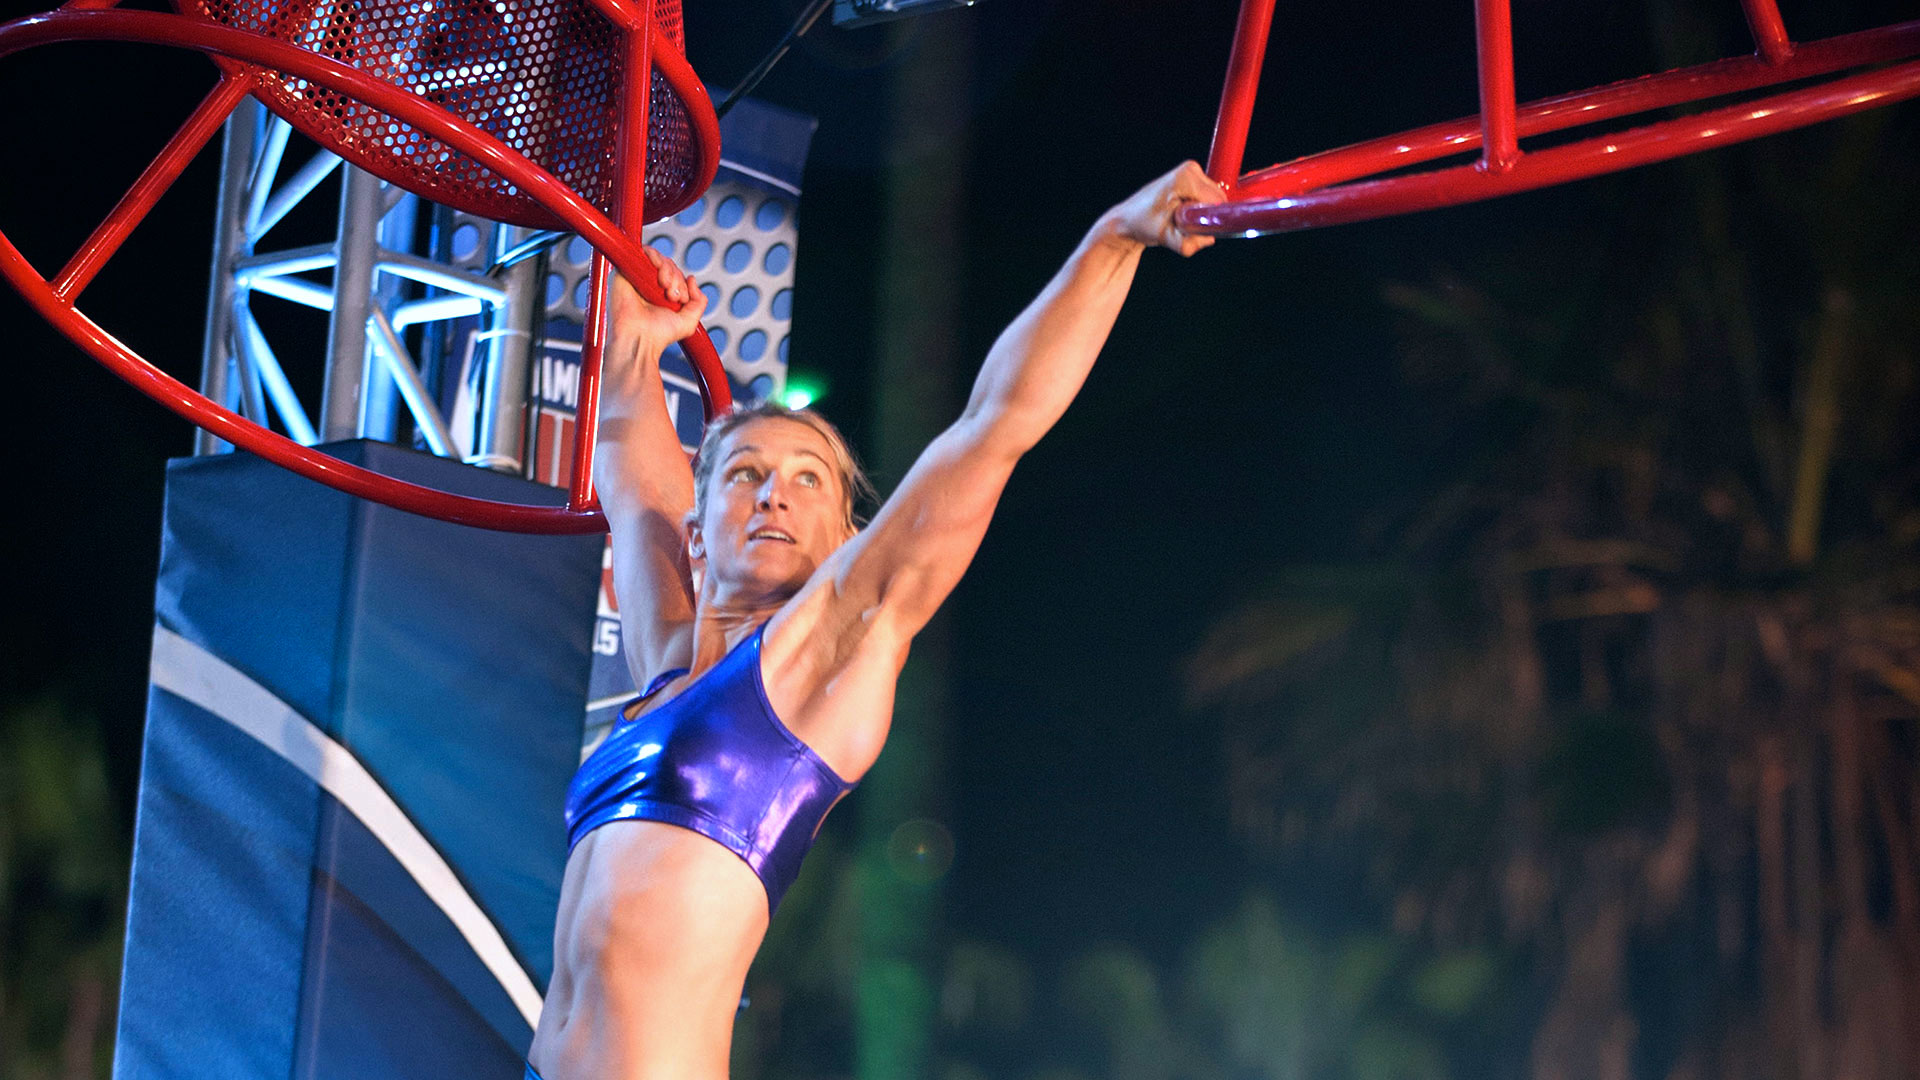 From Husker To American Ninja Warrior Graff Competes On